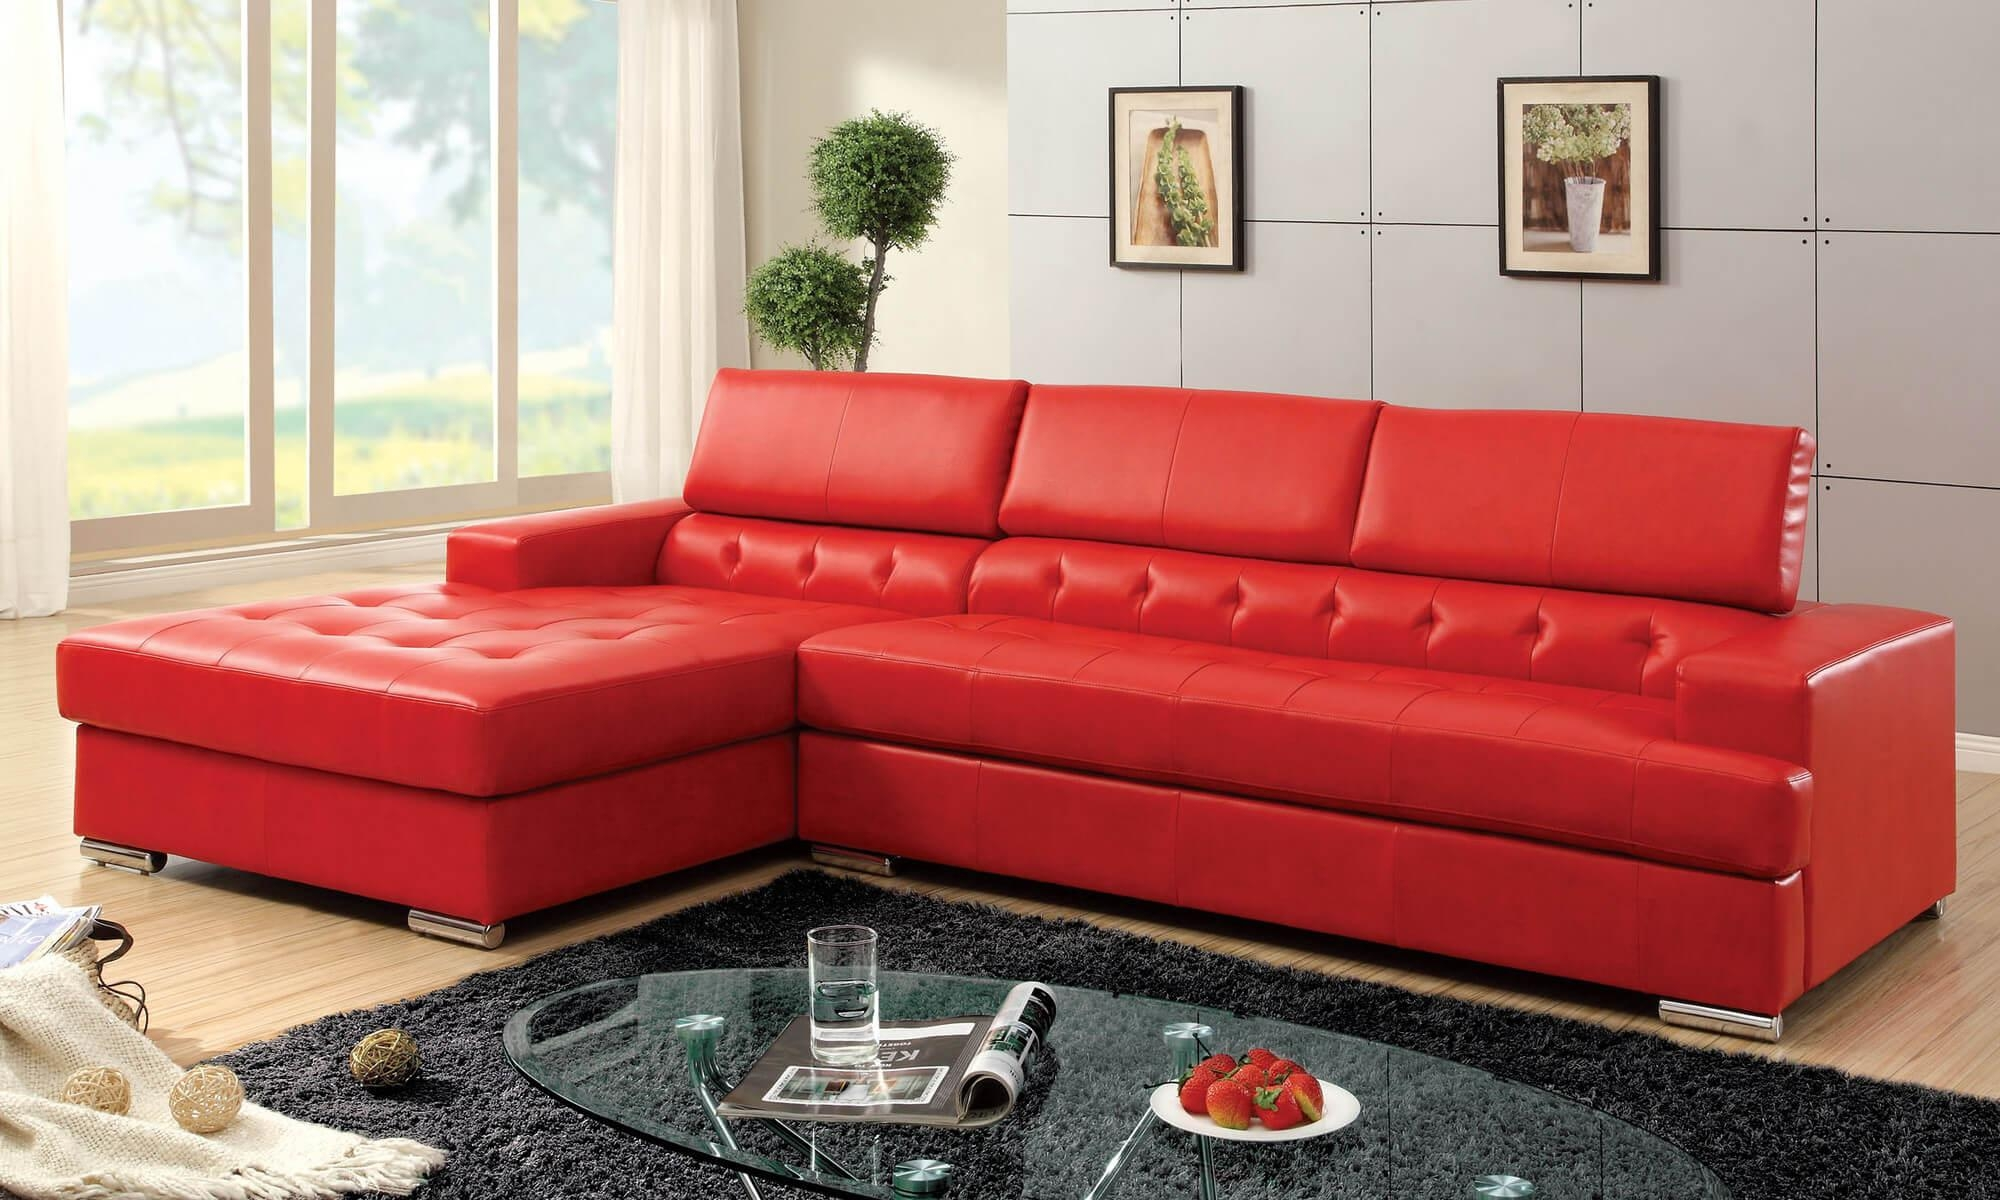 Sofas Center : Tosh Furniture Modern Black And Red Sofa Set Ikea Throughout Black And Red Sofas (View 14 of 20)